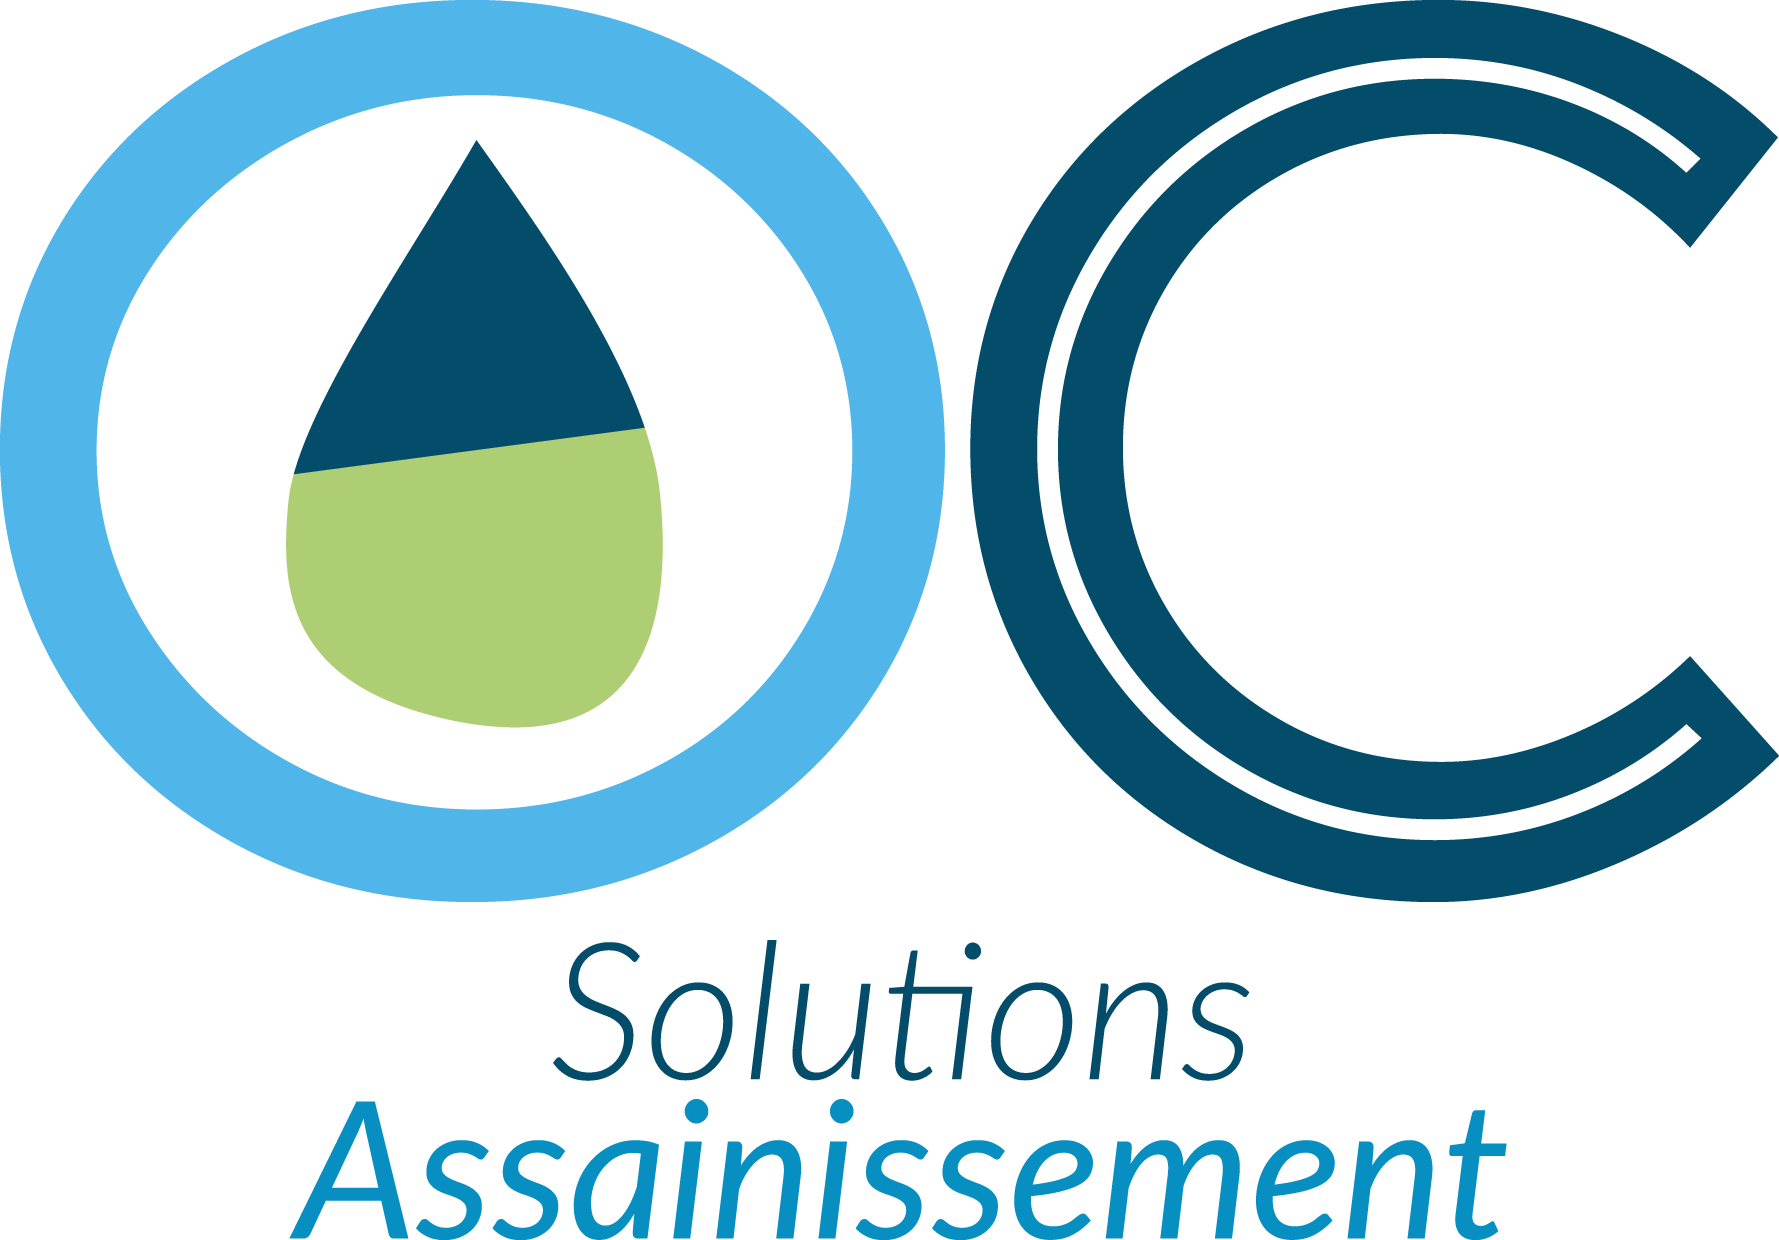 OC Solutions Assainissement